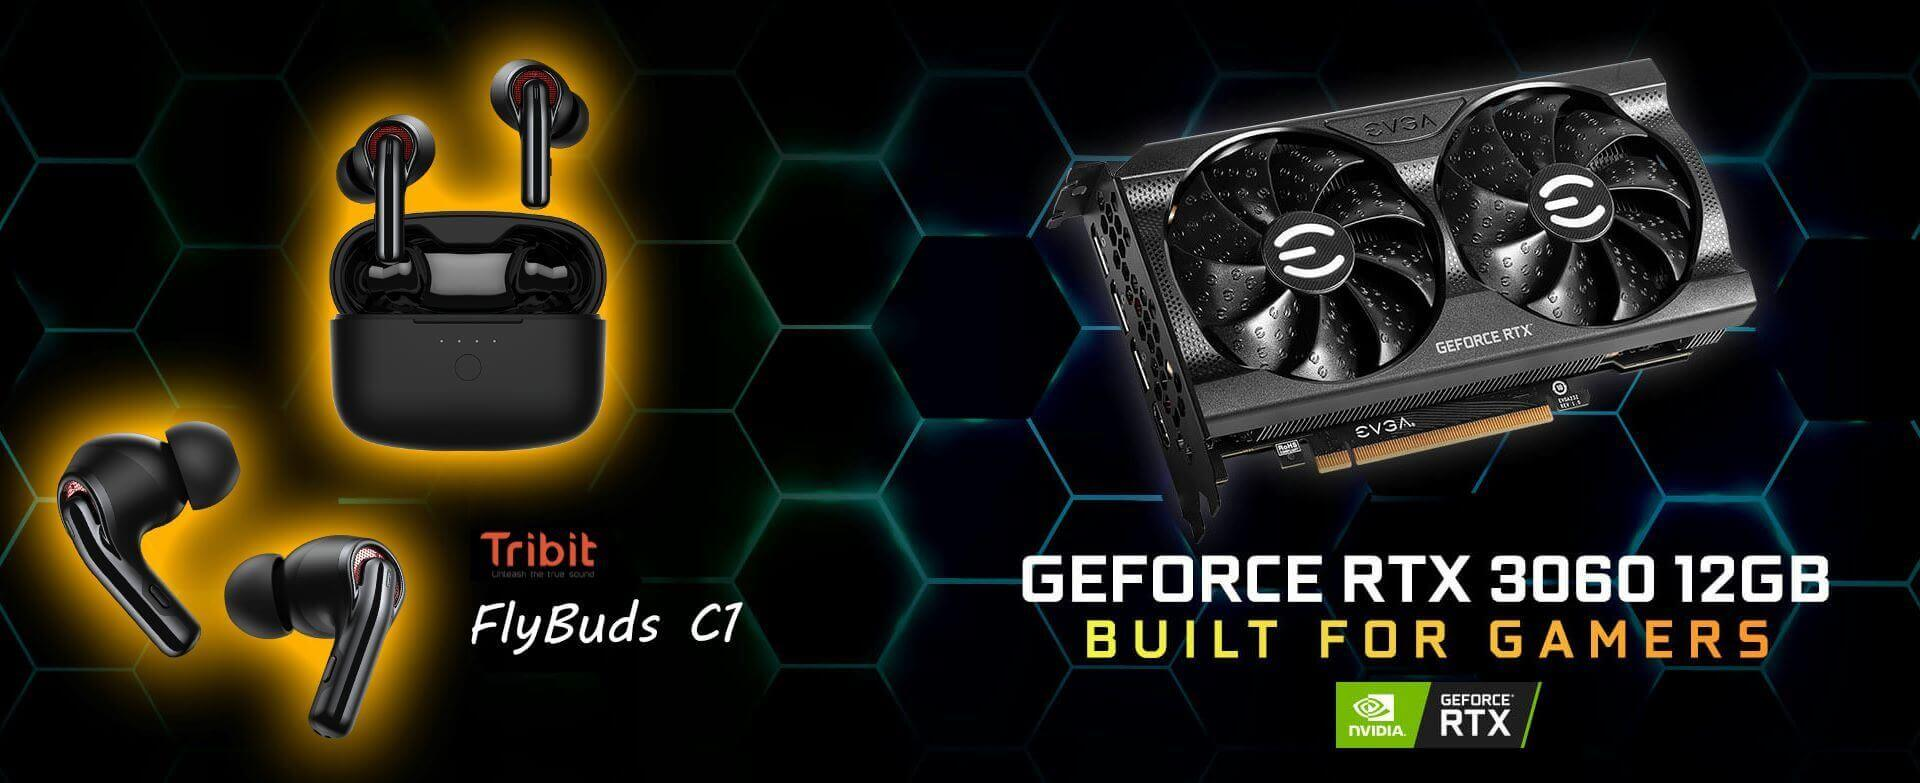 Super Tech Fan Geforce RTX 3060